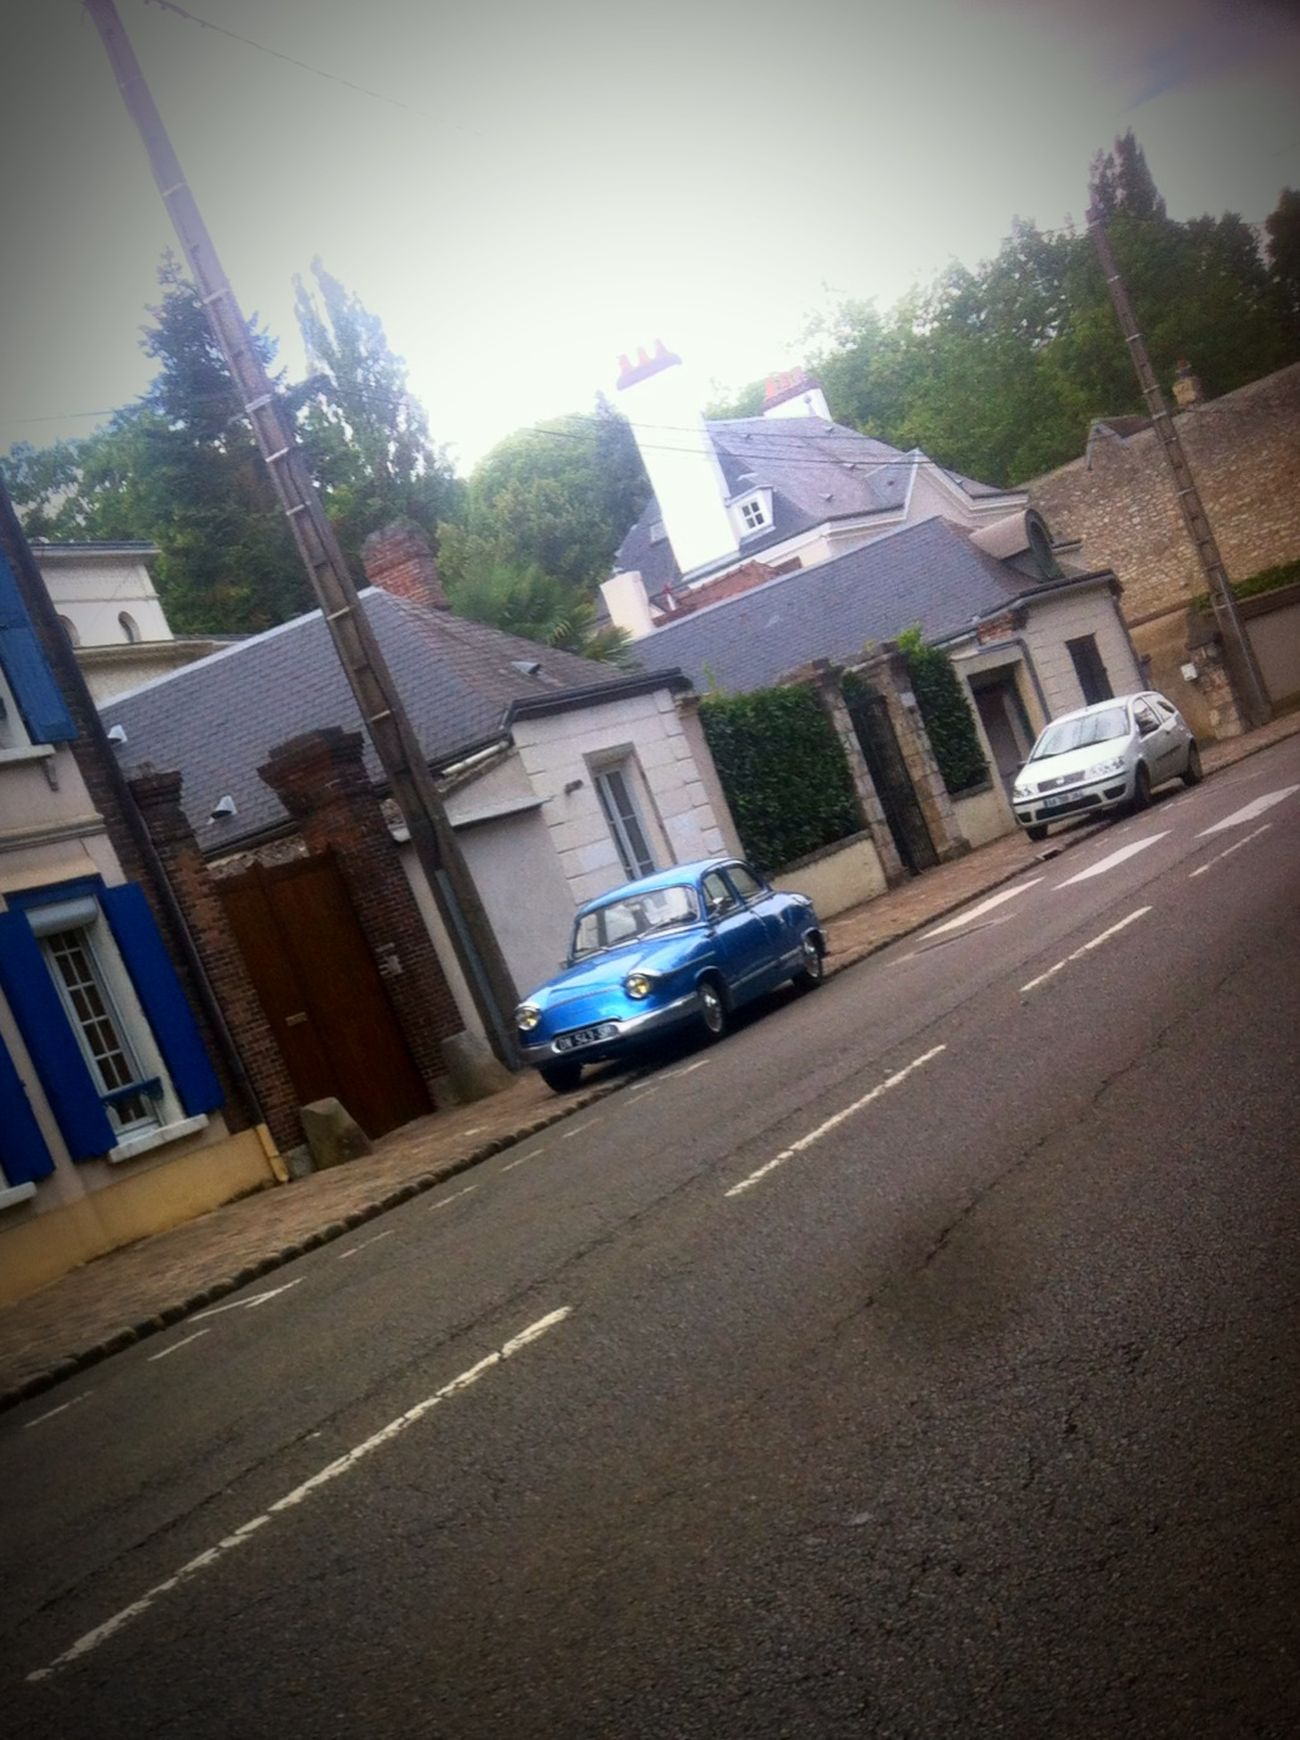 Blue old Panhard Old Car Panhard Old Car Cars Vintage Cars